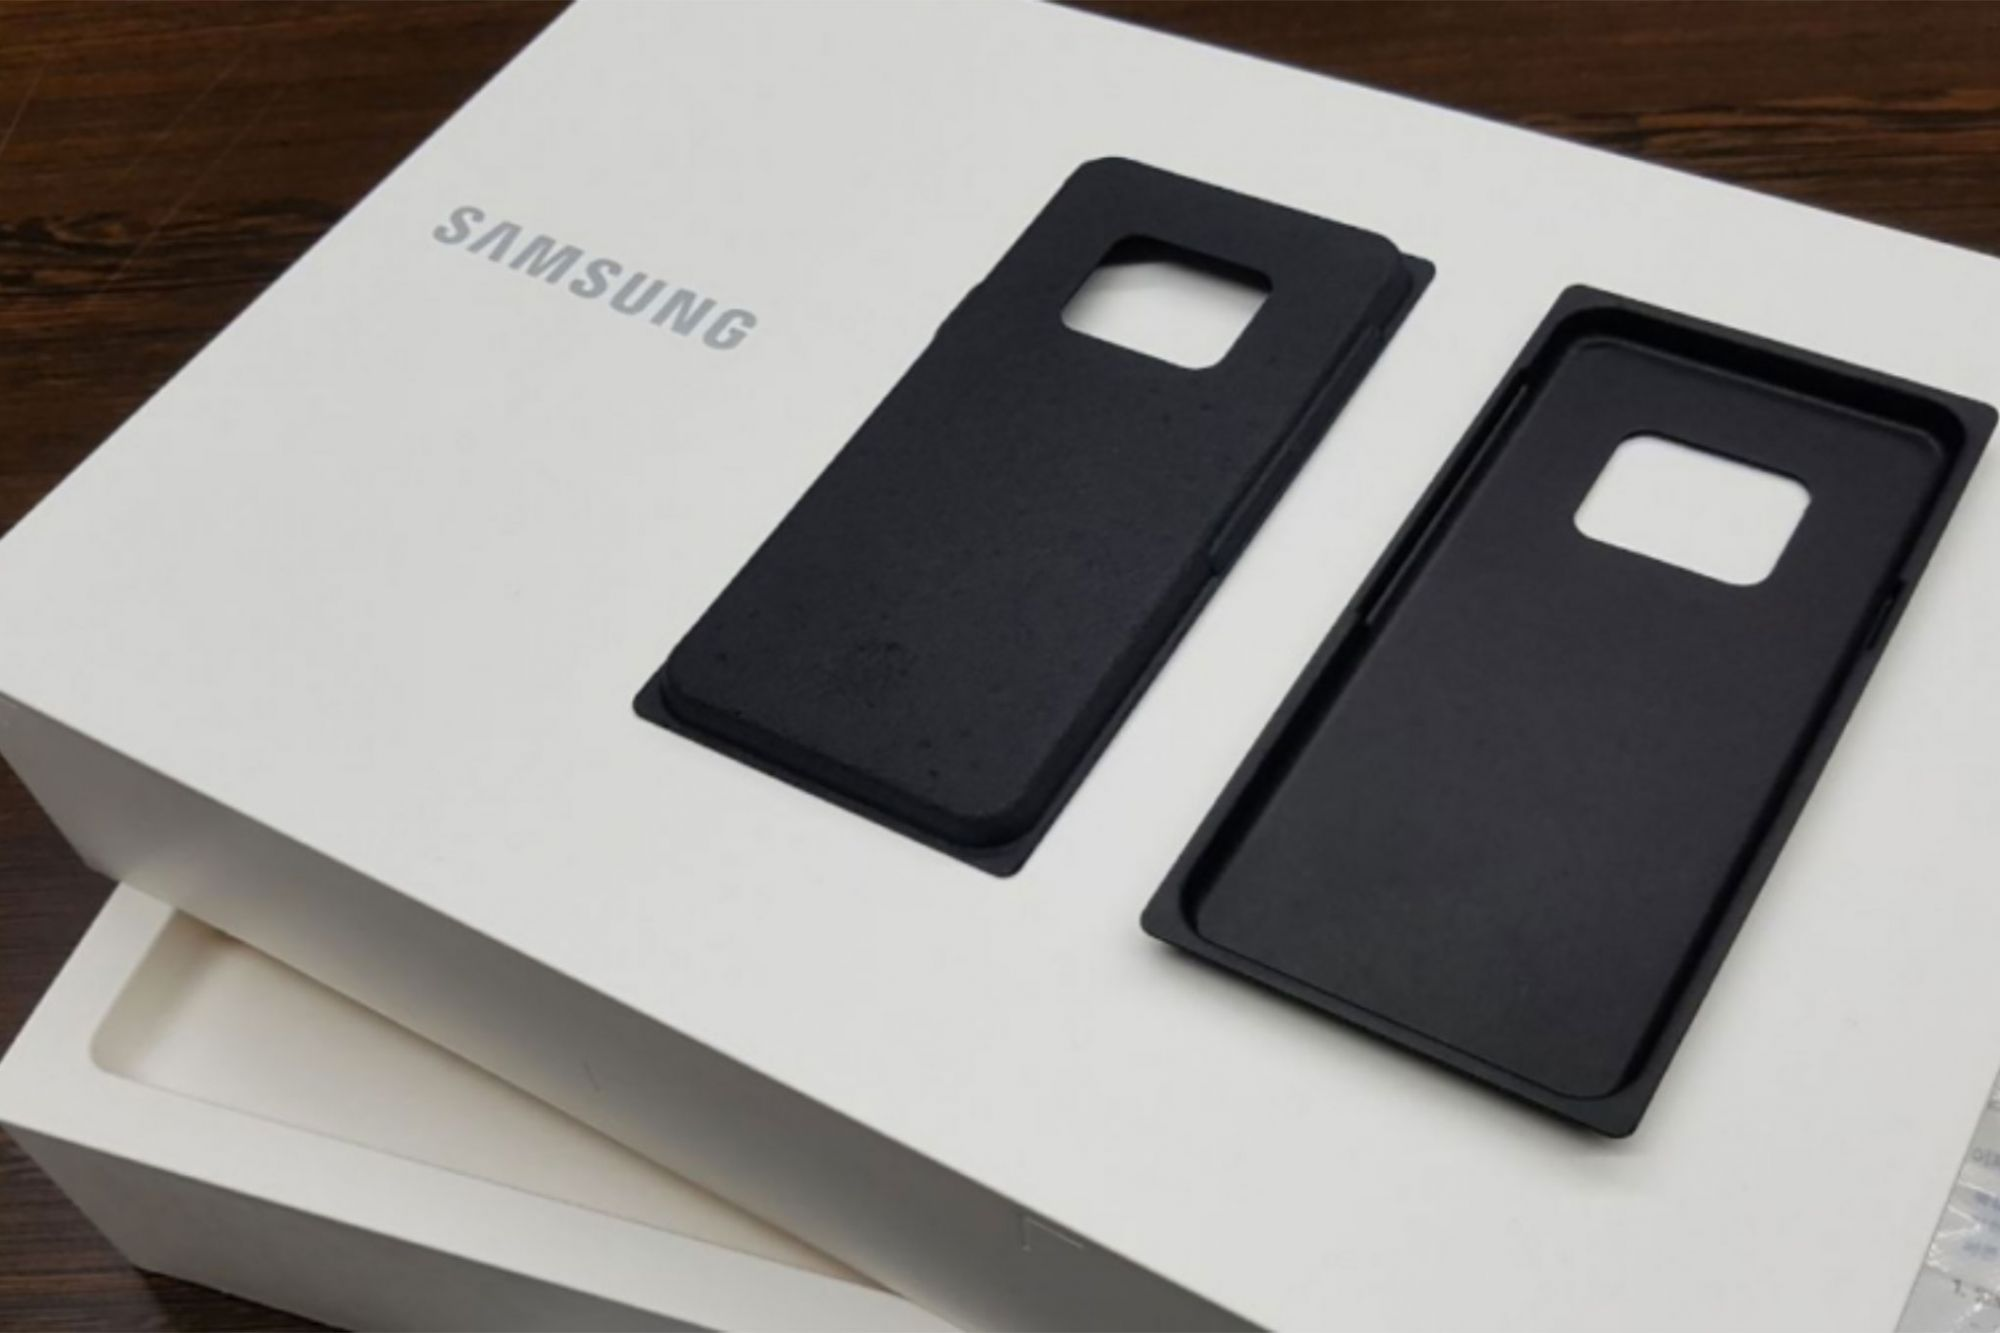 Samsung to Stop Using Plastic Packaging